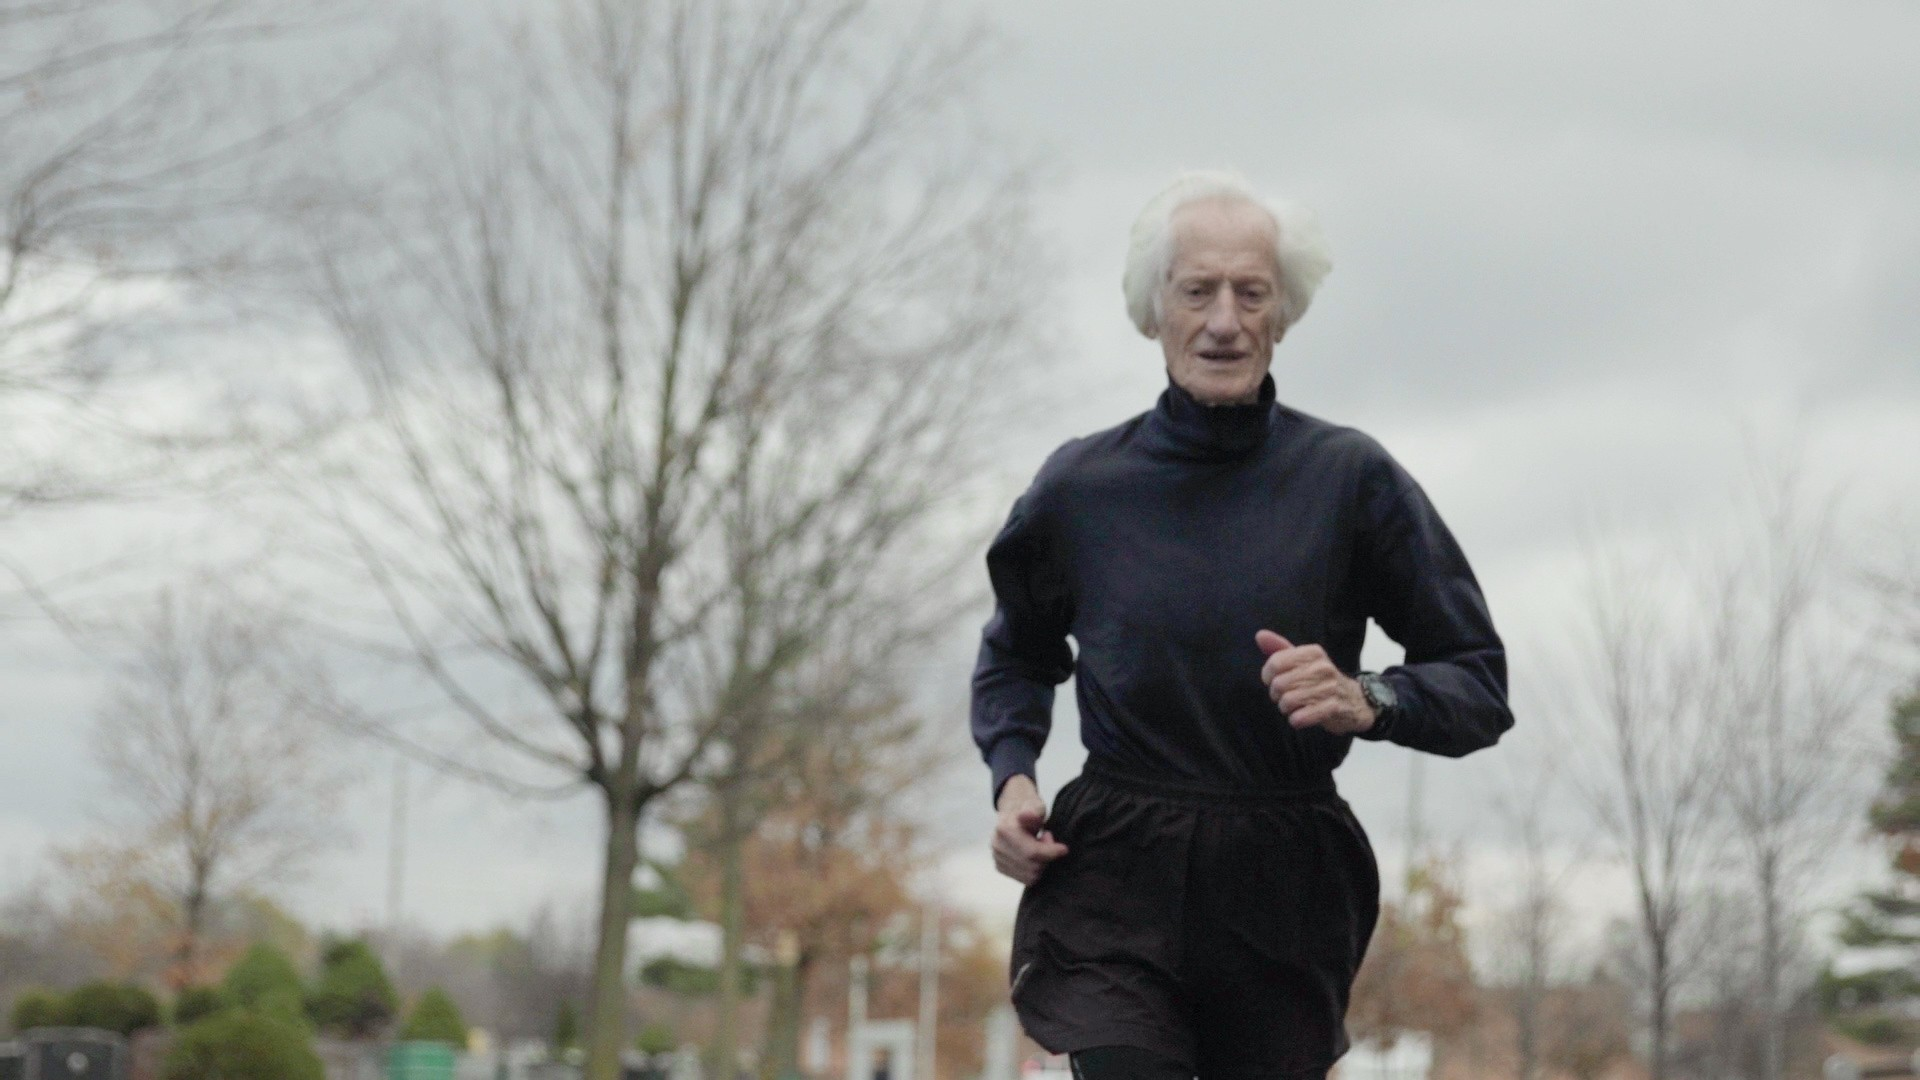 The 85 Year-Old Marathon Runner Beating Competition Half His Age